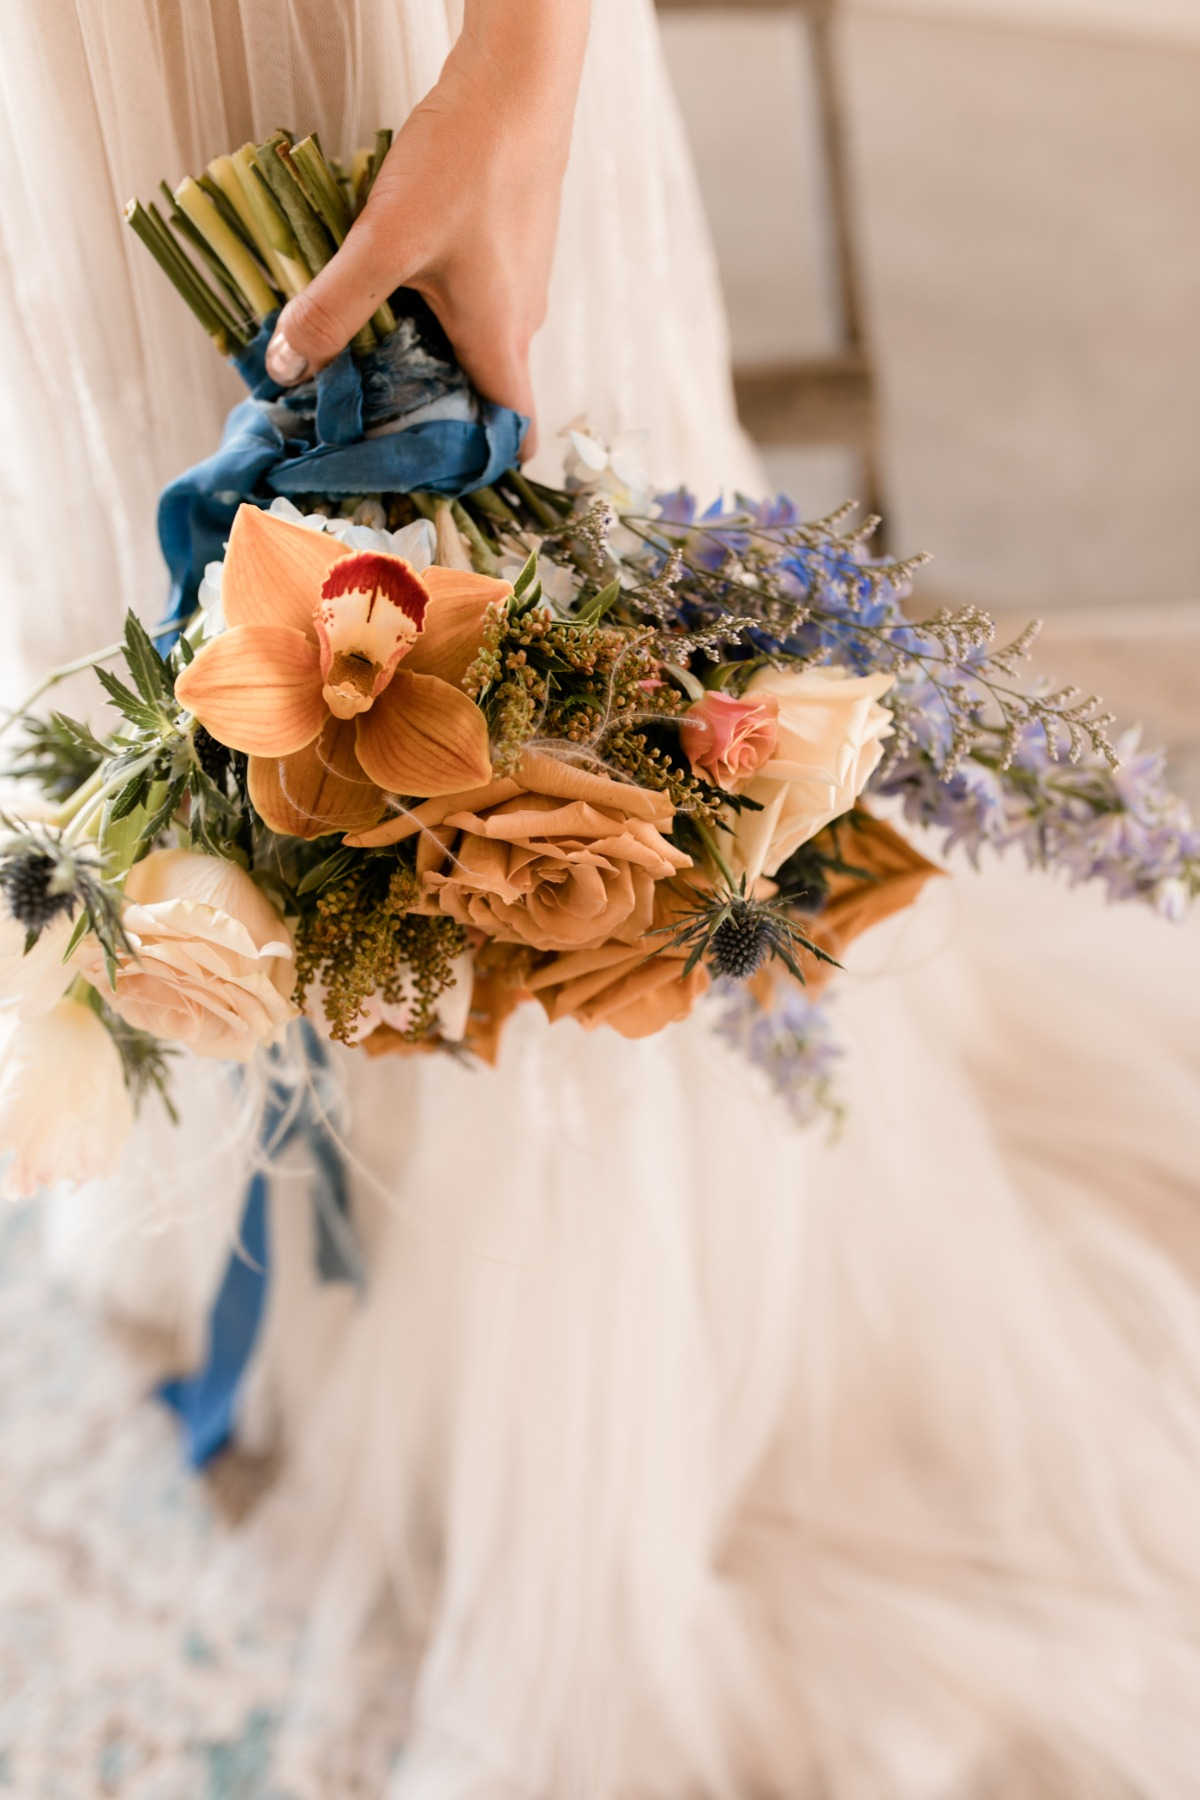 whimsical blue, orange and white wedding bouquet by Flourish & Knot